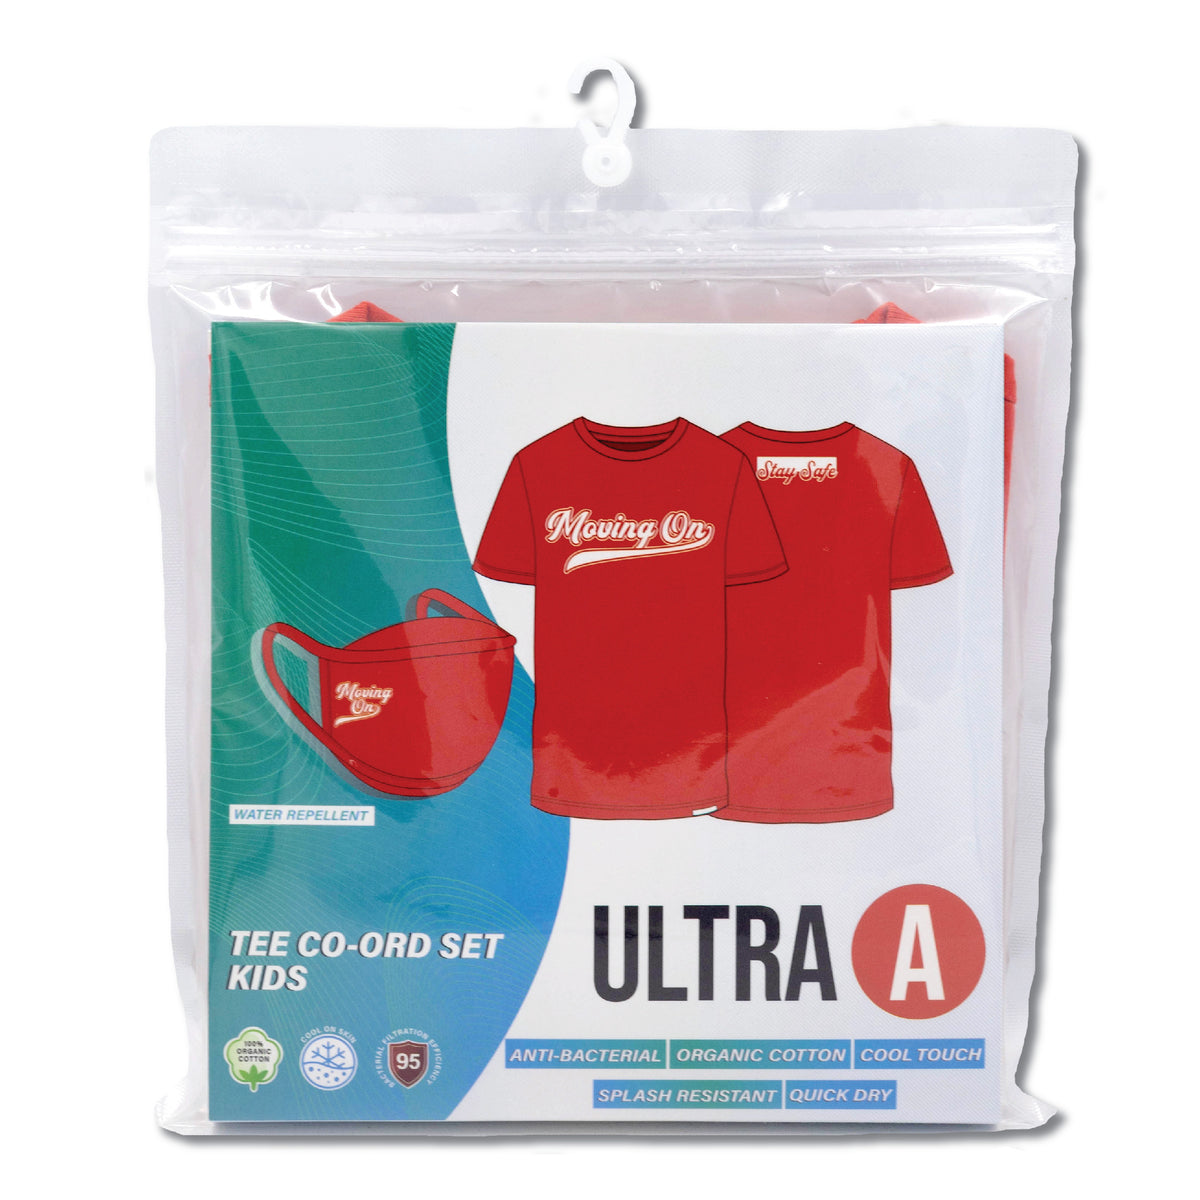 Anti-Bacterial Tee + 3-Ply Anti-Bacterial Mask Co-Ord Set (Moving On - Kids)